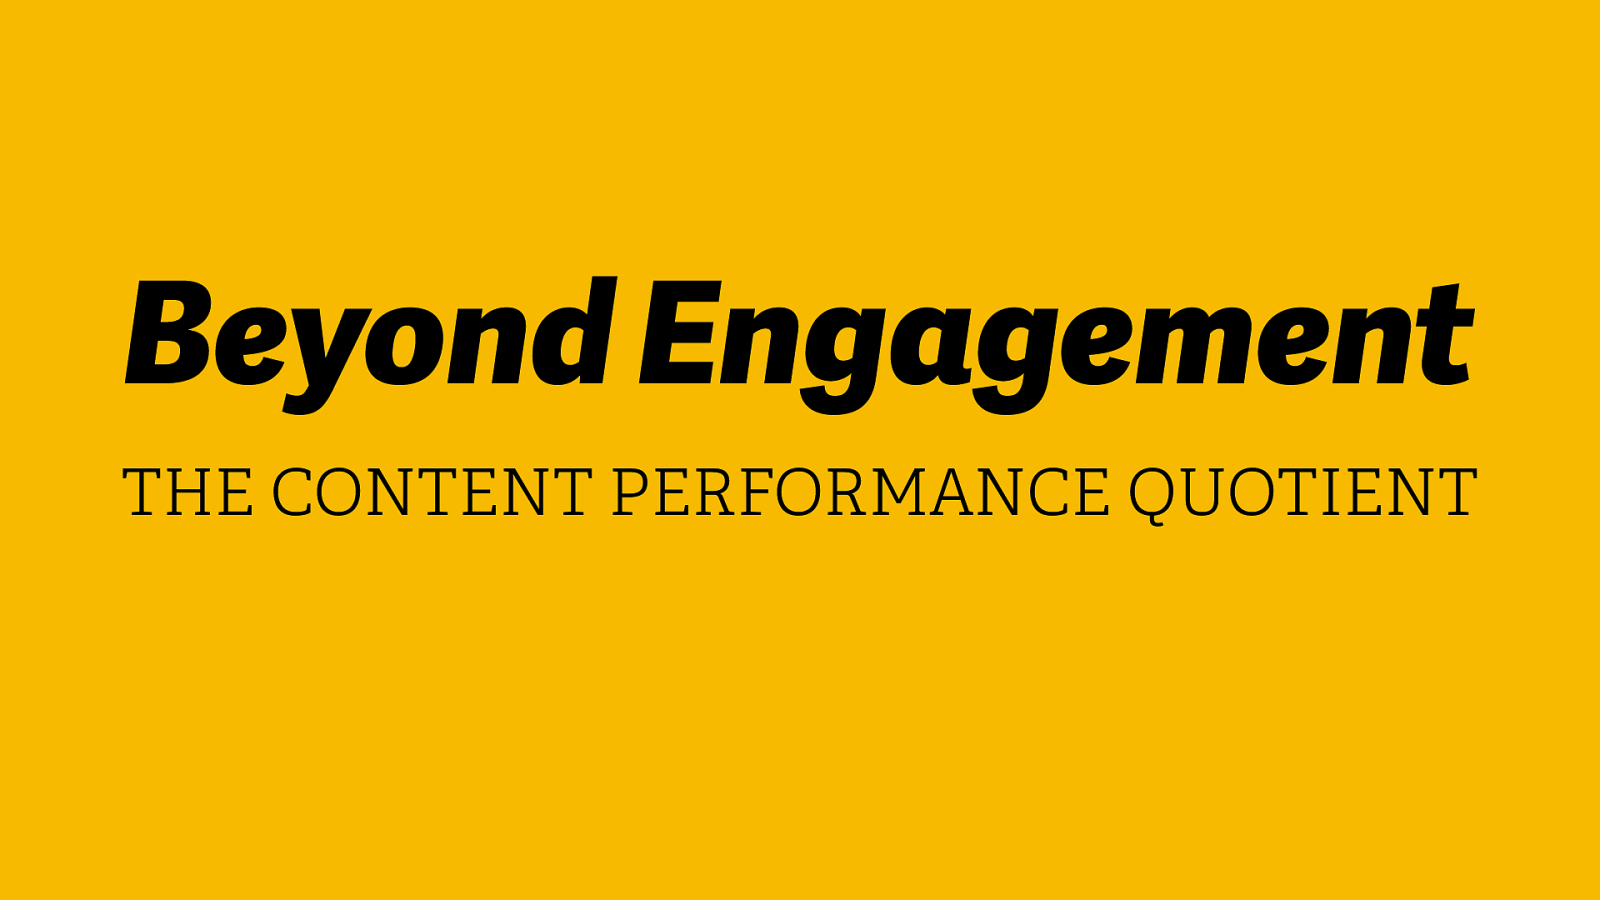 Beyond Engagement: the Content Performance Quotient